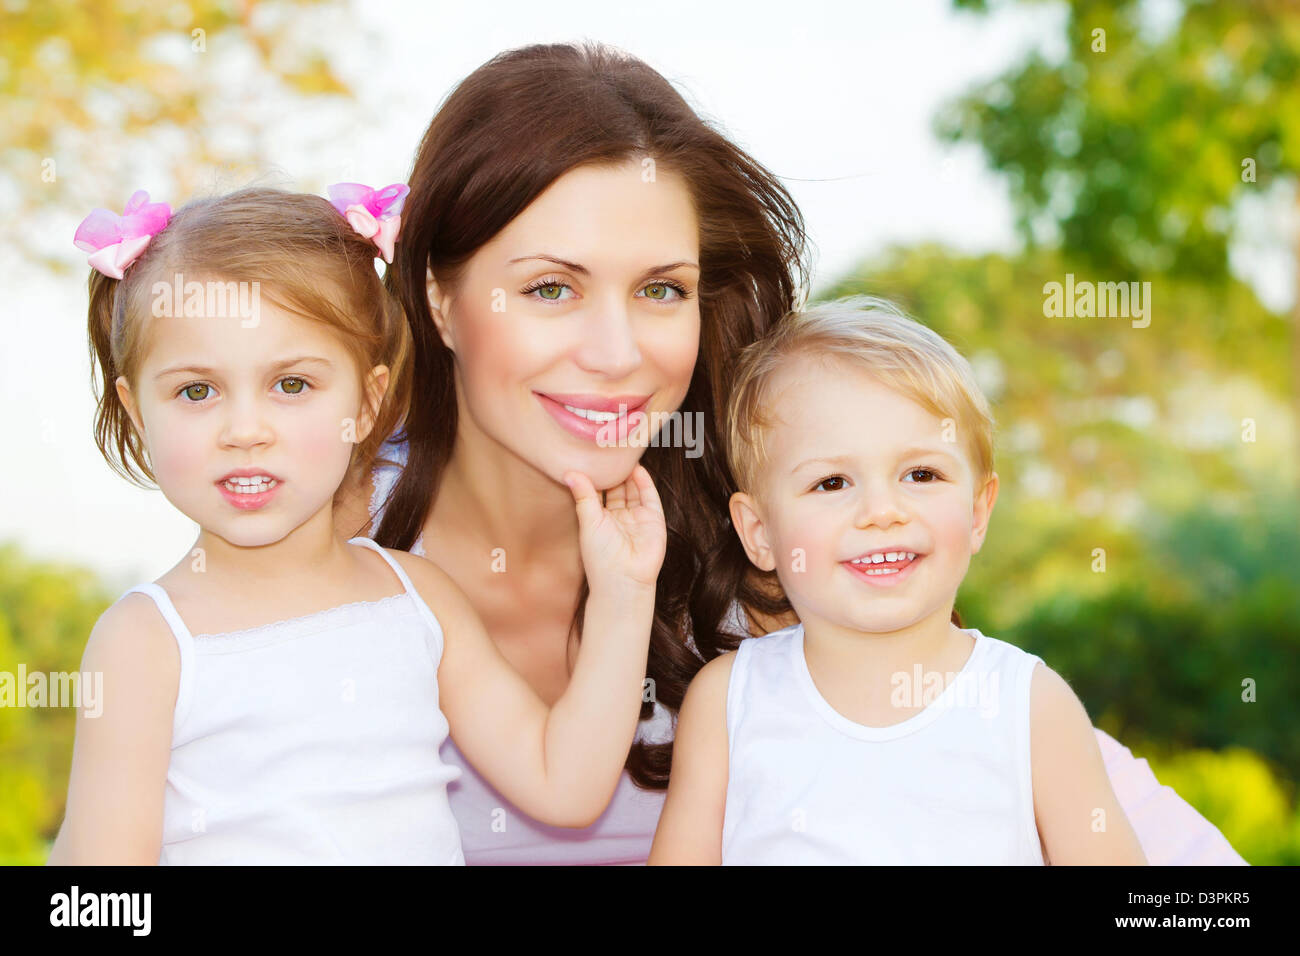 Photo of beautiful woman with two cute kids, closeup portrait of young mother with sweet daughter and lovely son Stock Photo